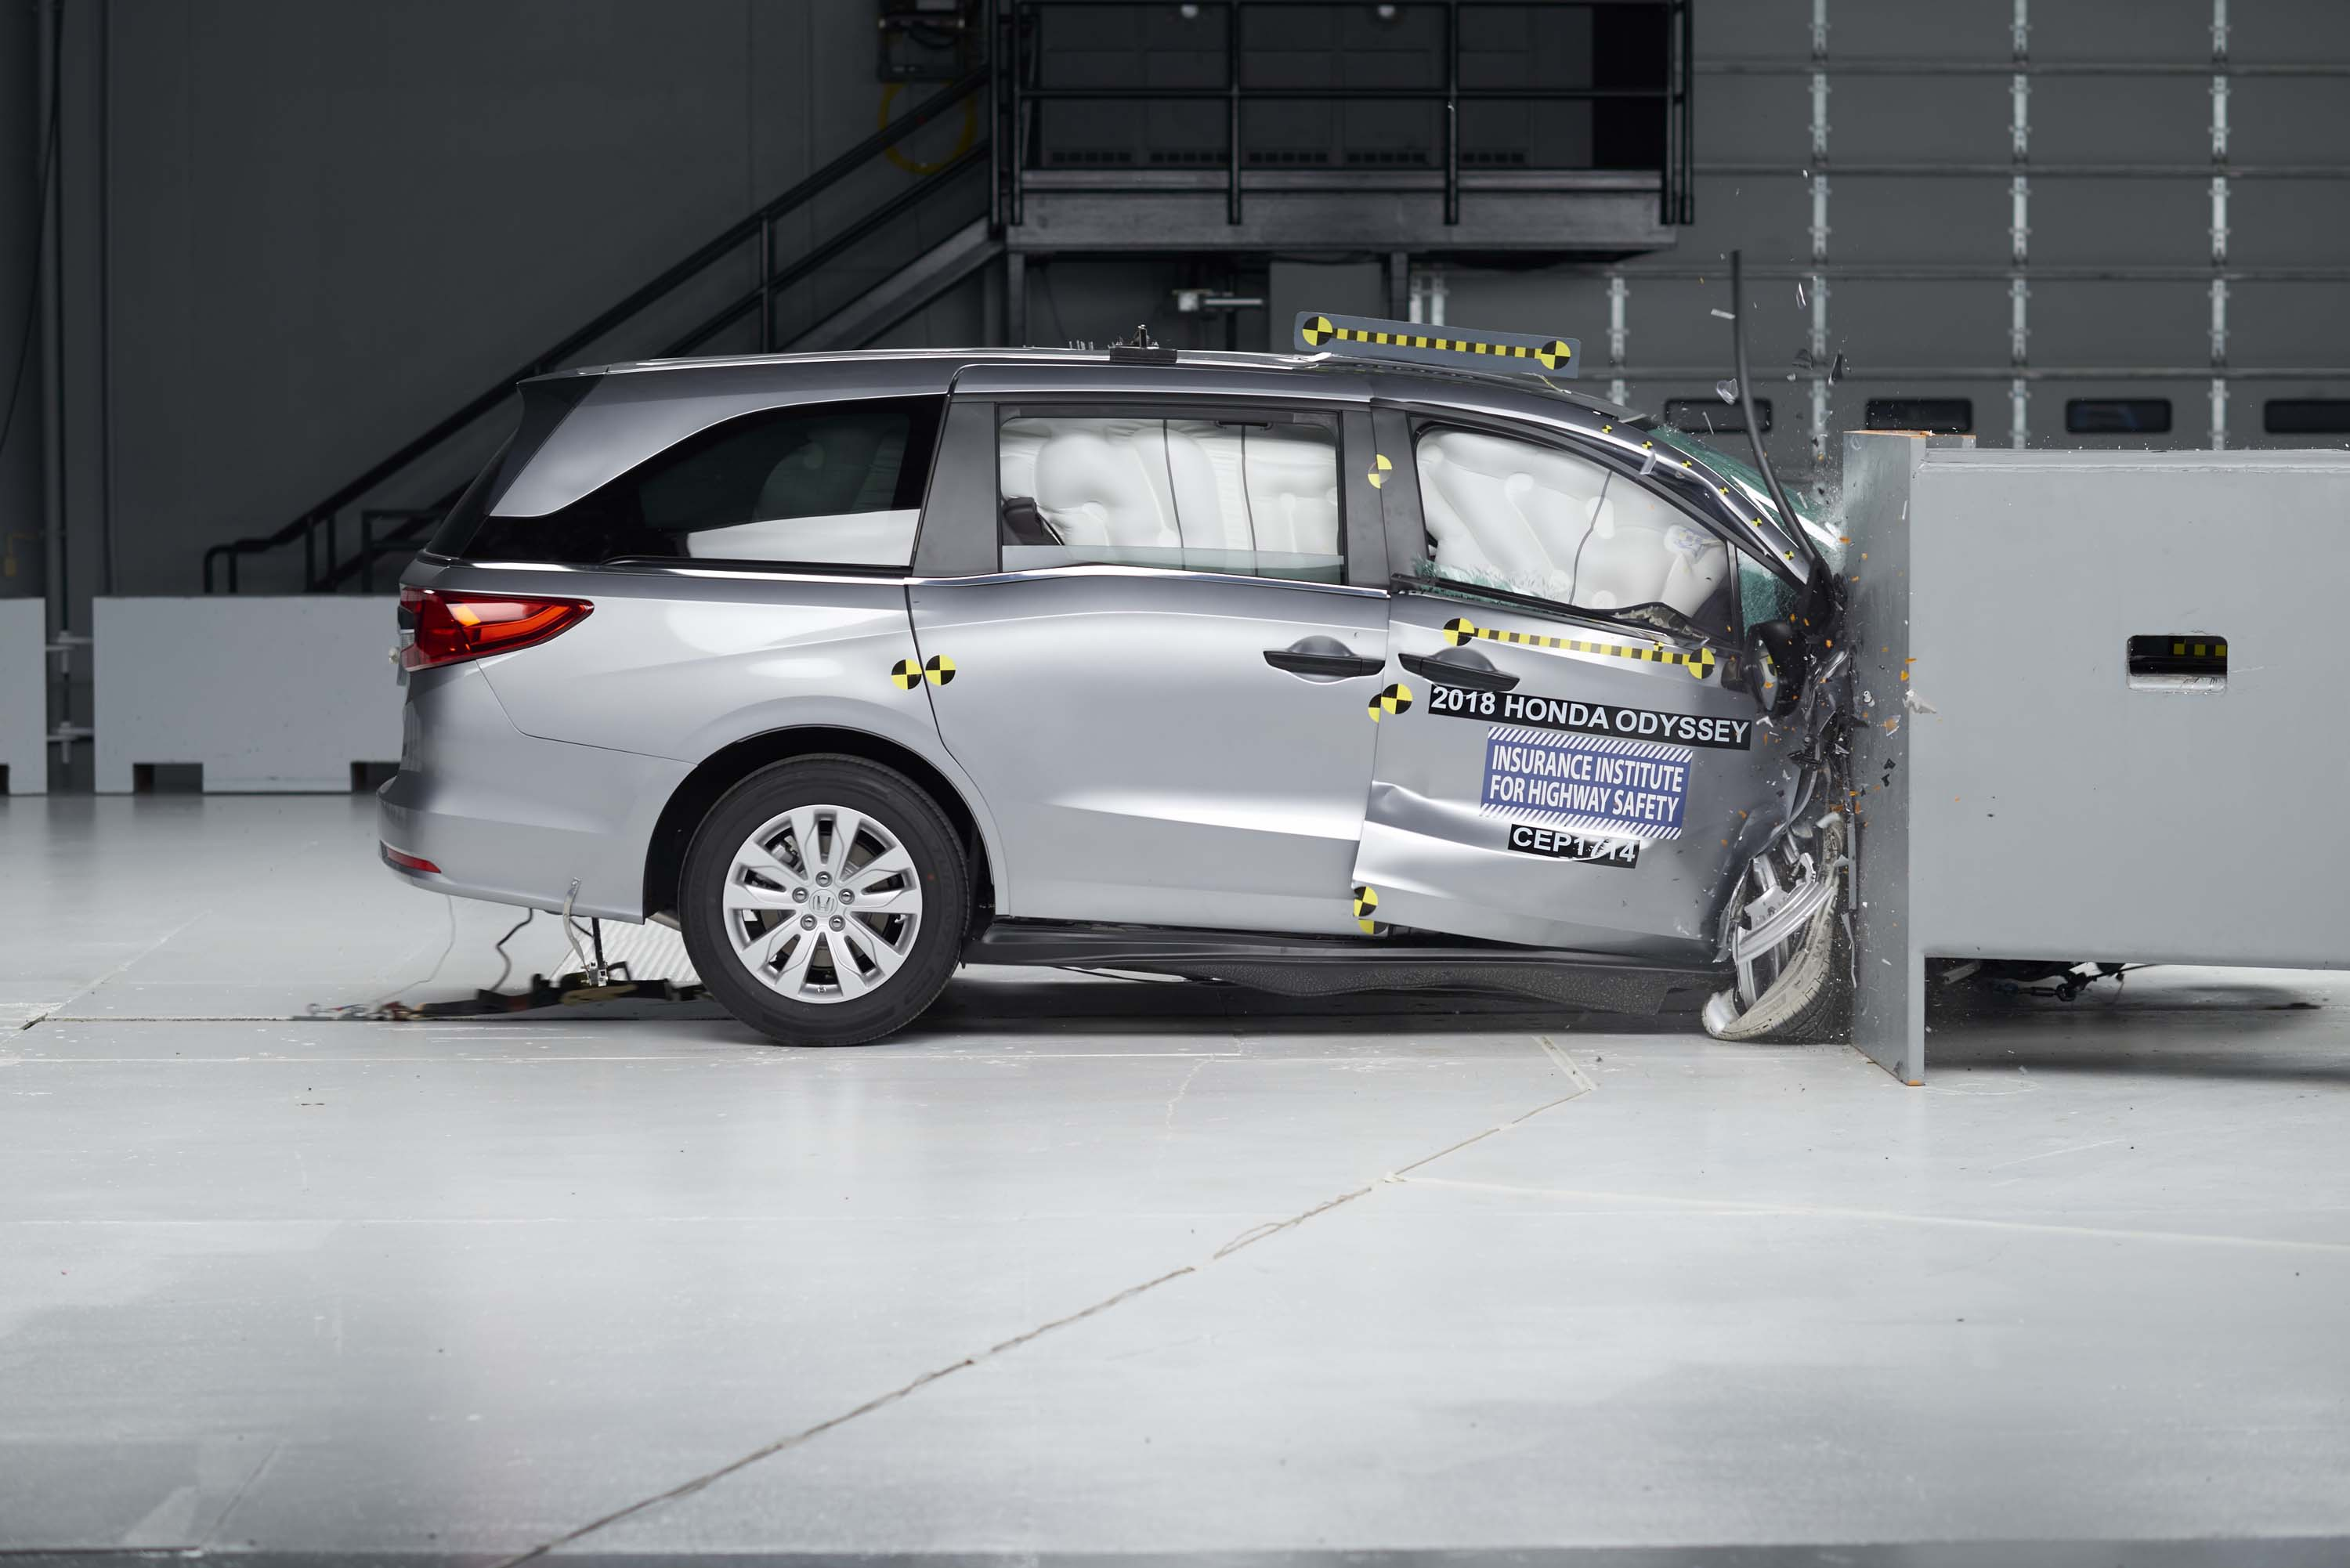 Minivan Crash Tests Bmw Gets Sporty Again Eco Car Deals Whats Basic Remote Start Walkthrough On Your Nissan Infiniti Vehicle New The Connection